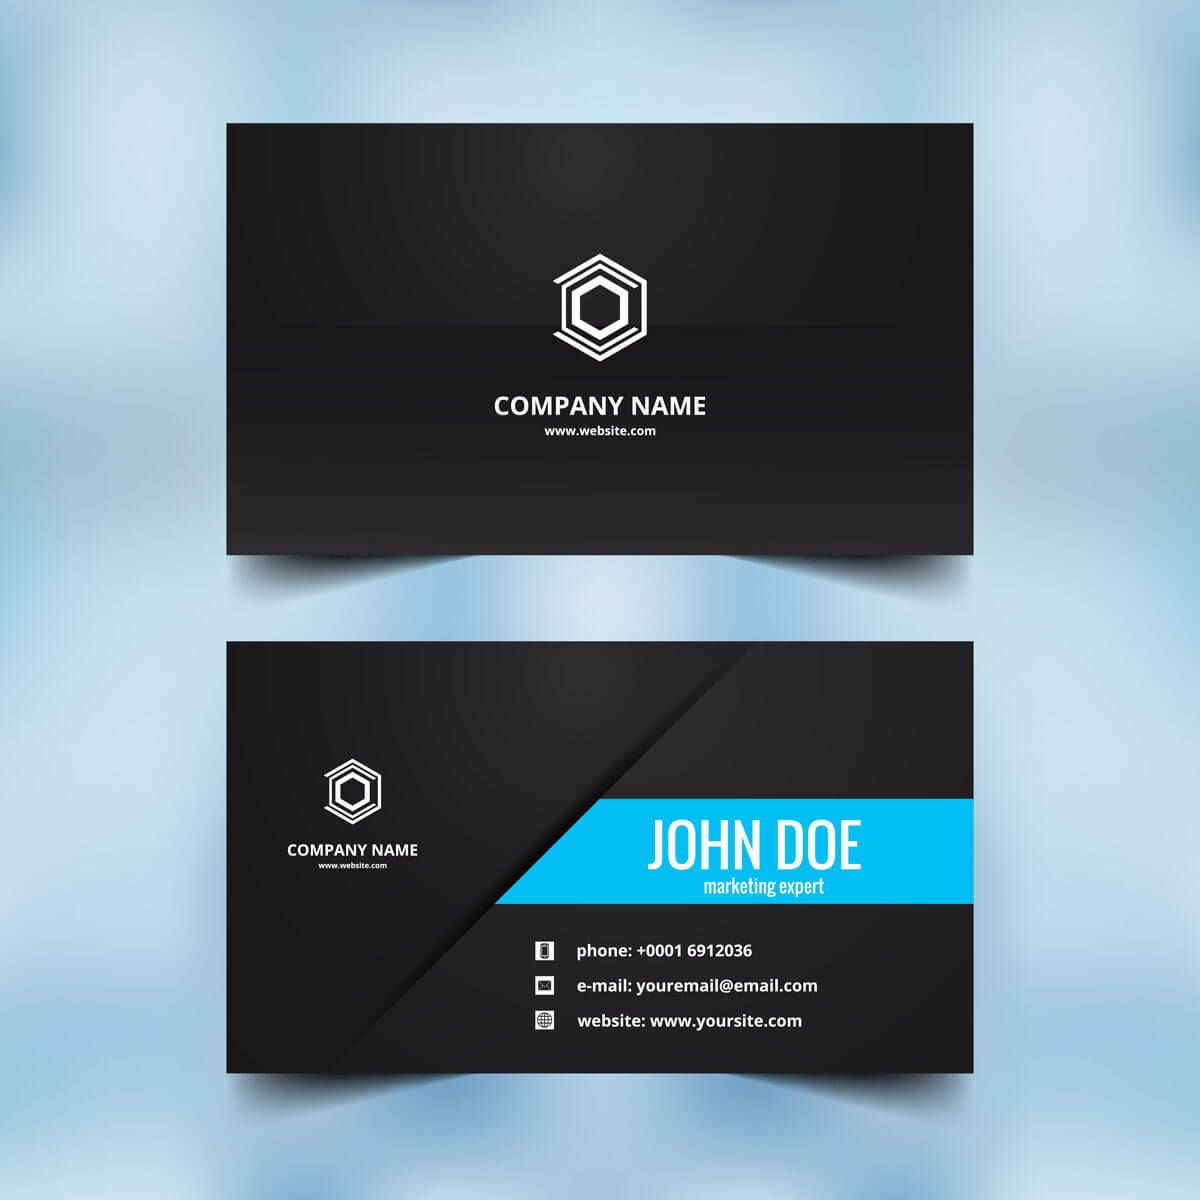 Business card sample design http49designersportfolio21 business card sample design http49designersportfolio2 fbccfo Images